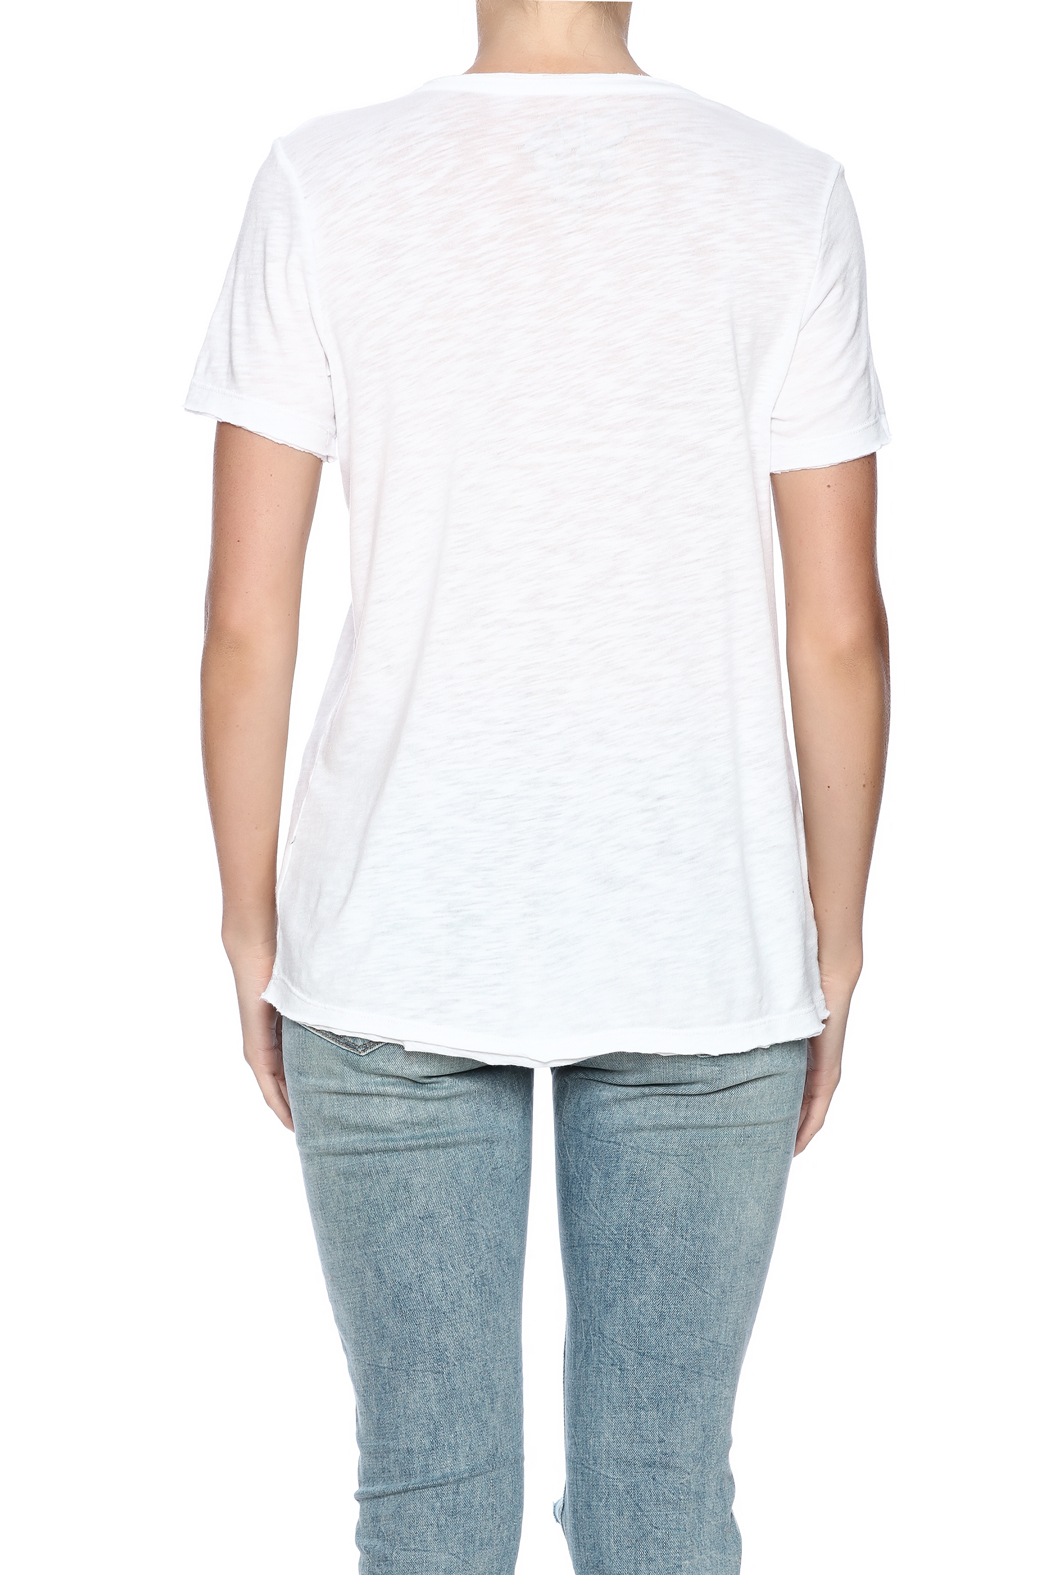 Chaser Printed Tee - Back Cropped Image